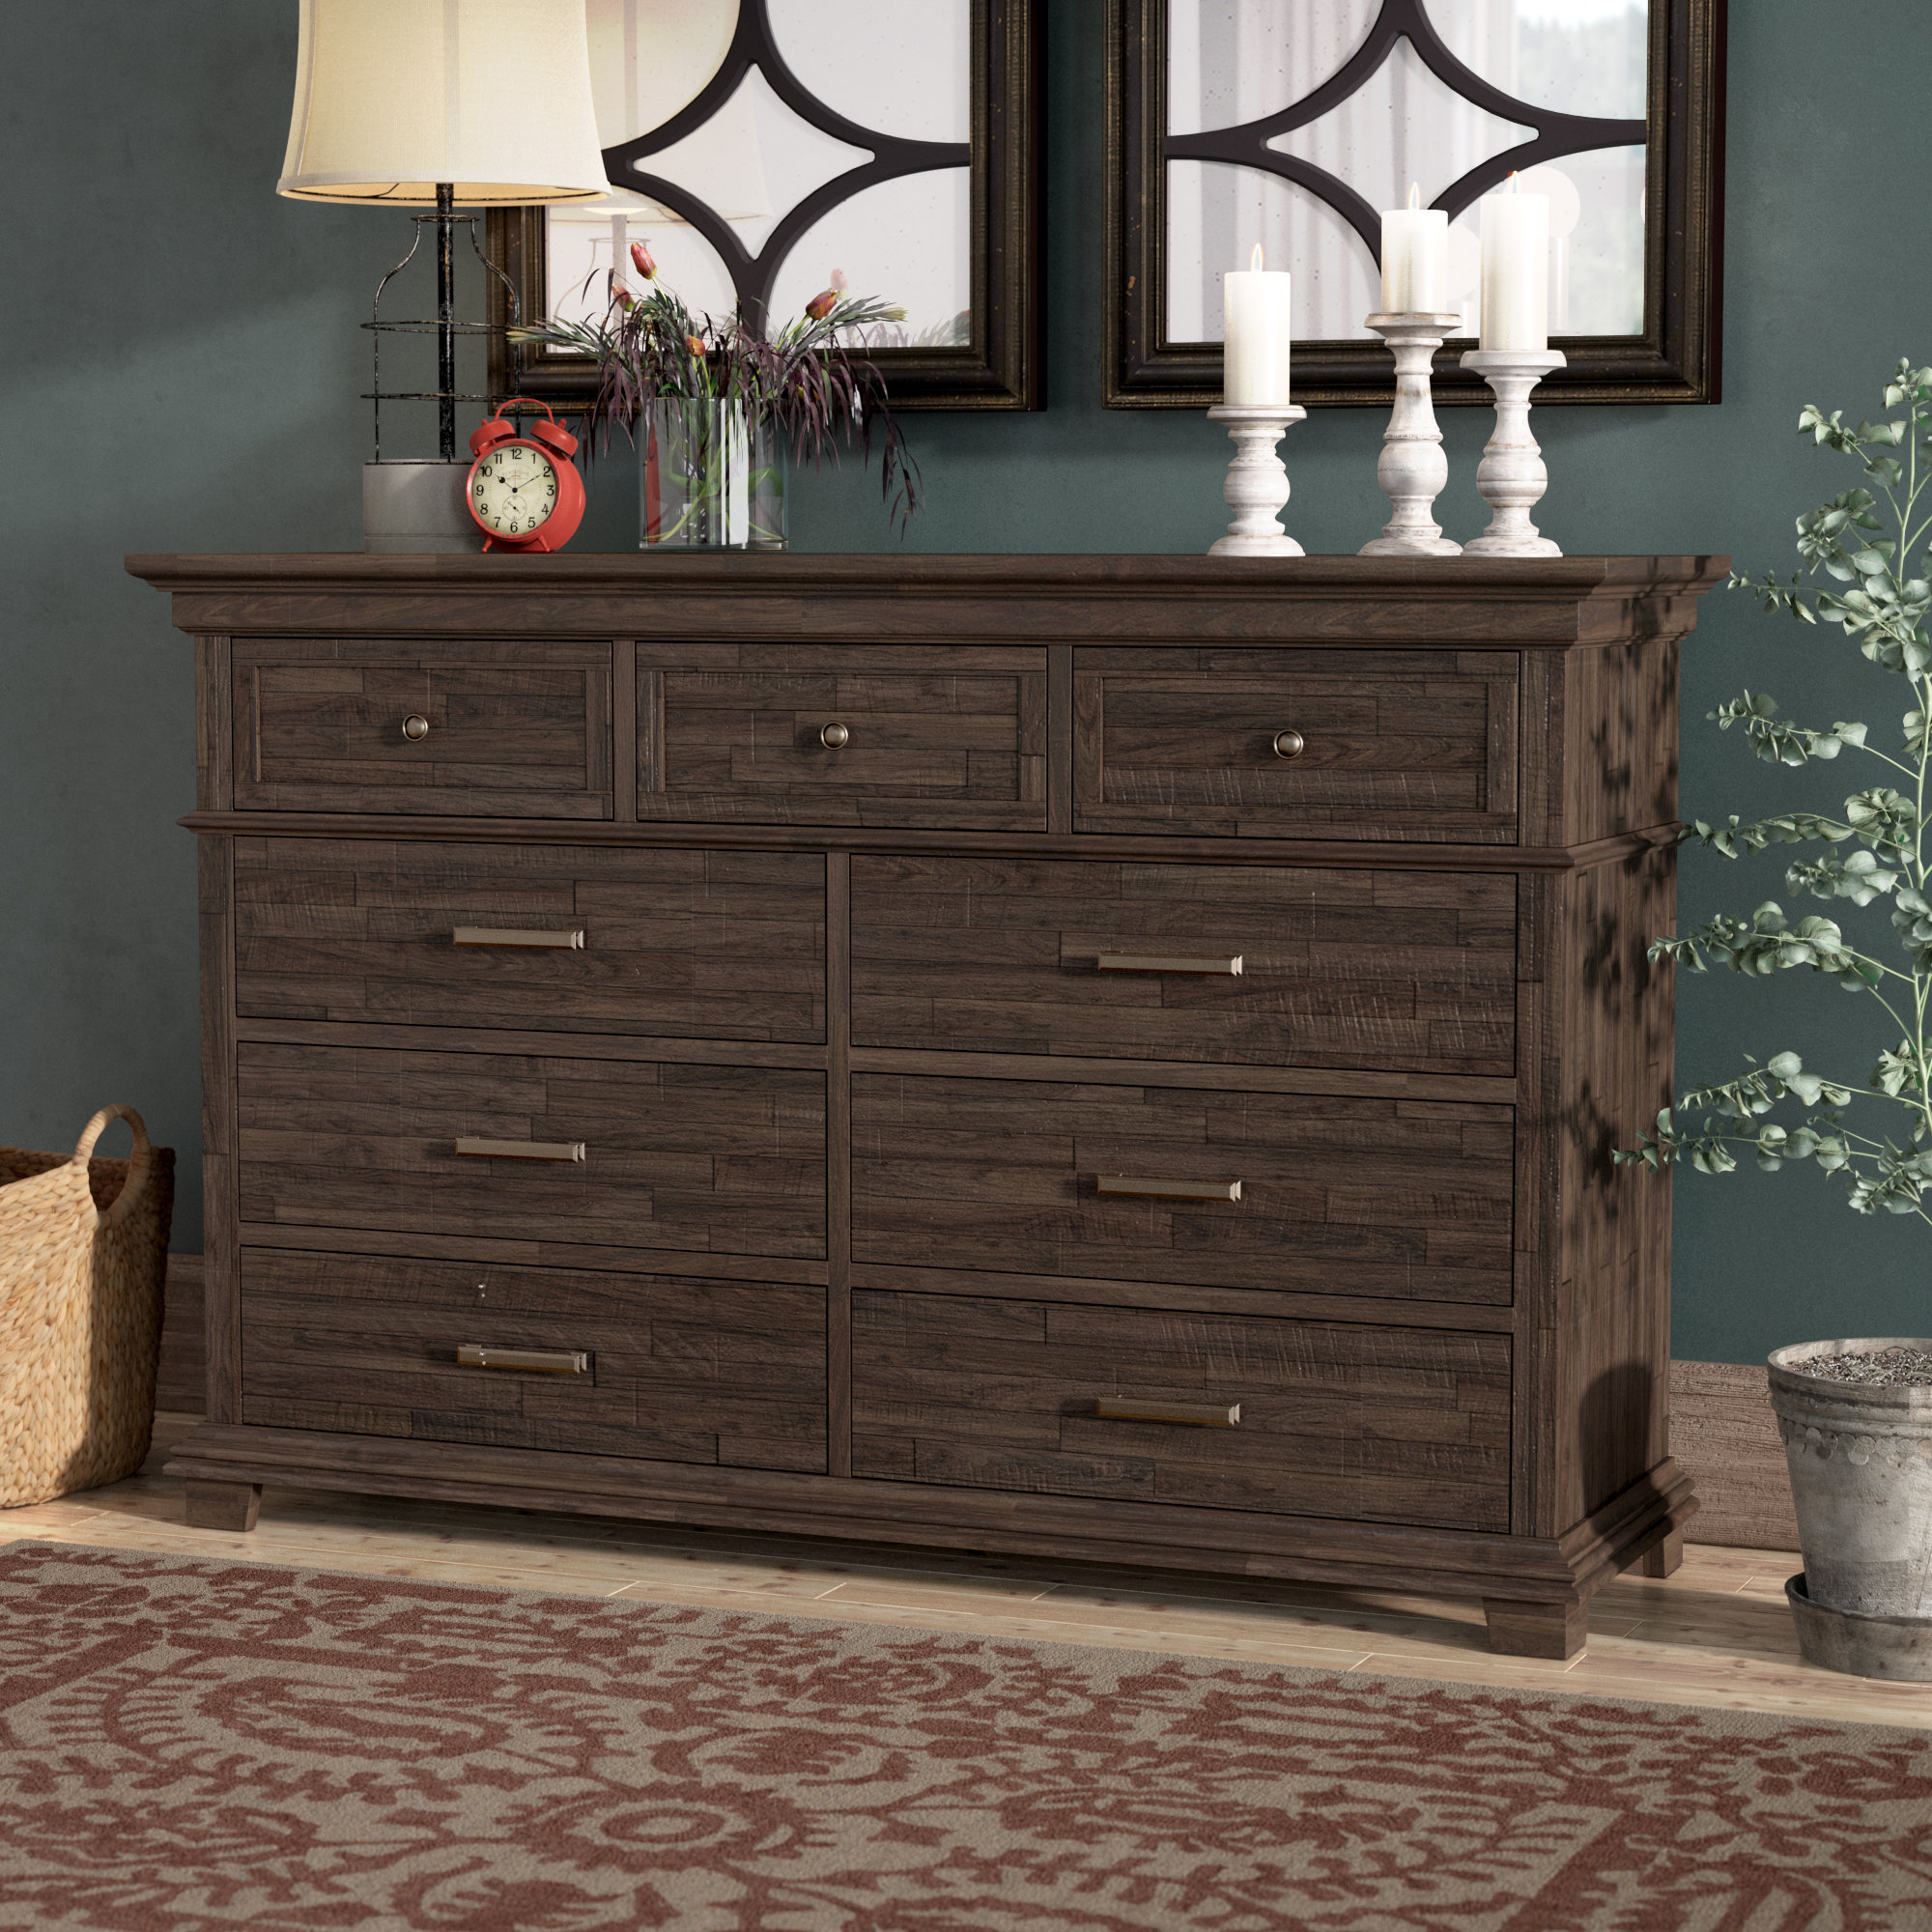 Colborne 9 Drawer Dresser With Regard To Colborne Sideboards (View 8 of 30)